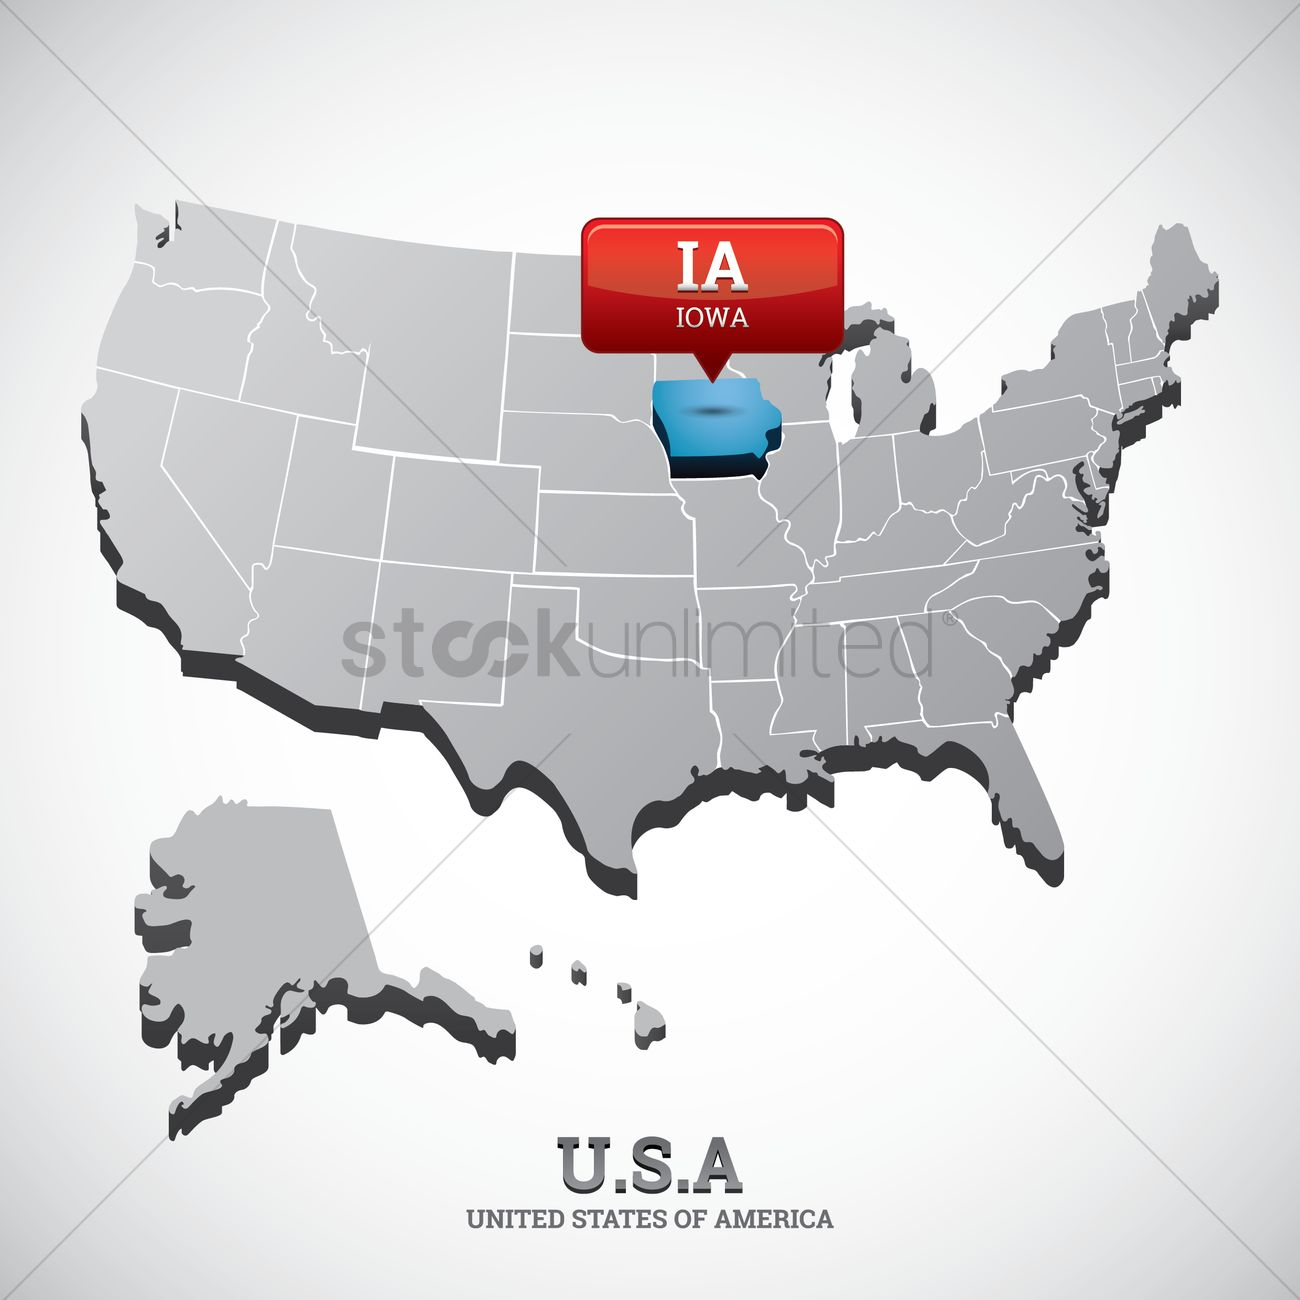 Iowa state on the map of usa Vector Image - 1532639 | StockUnlimited